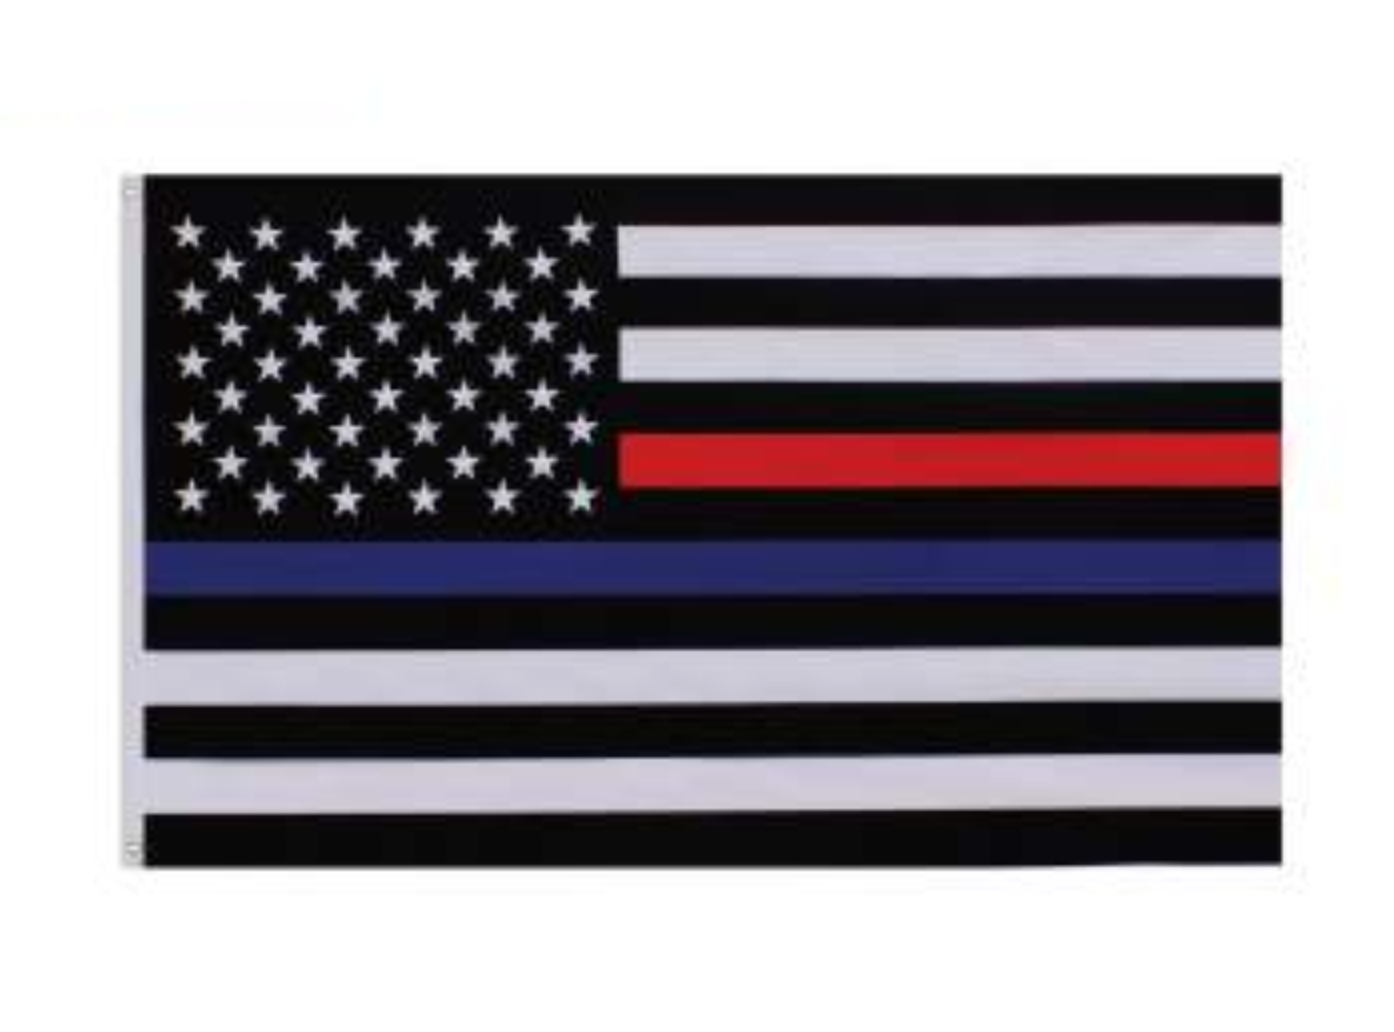 a5f6d7ced7557d Thin Blue Line Shop - Gifts   Ideas for Law Enforcement   Officers